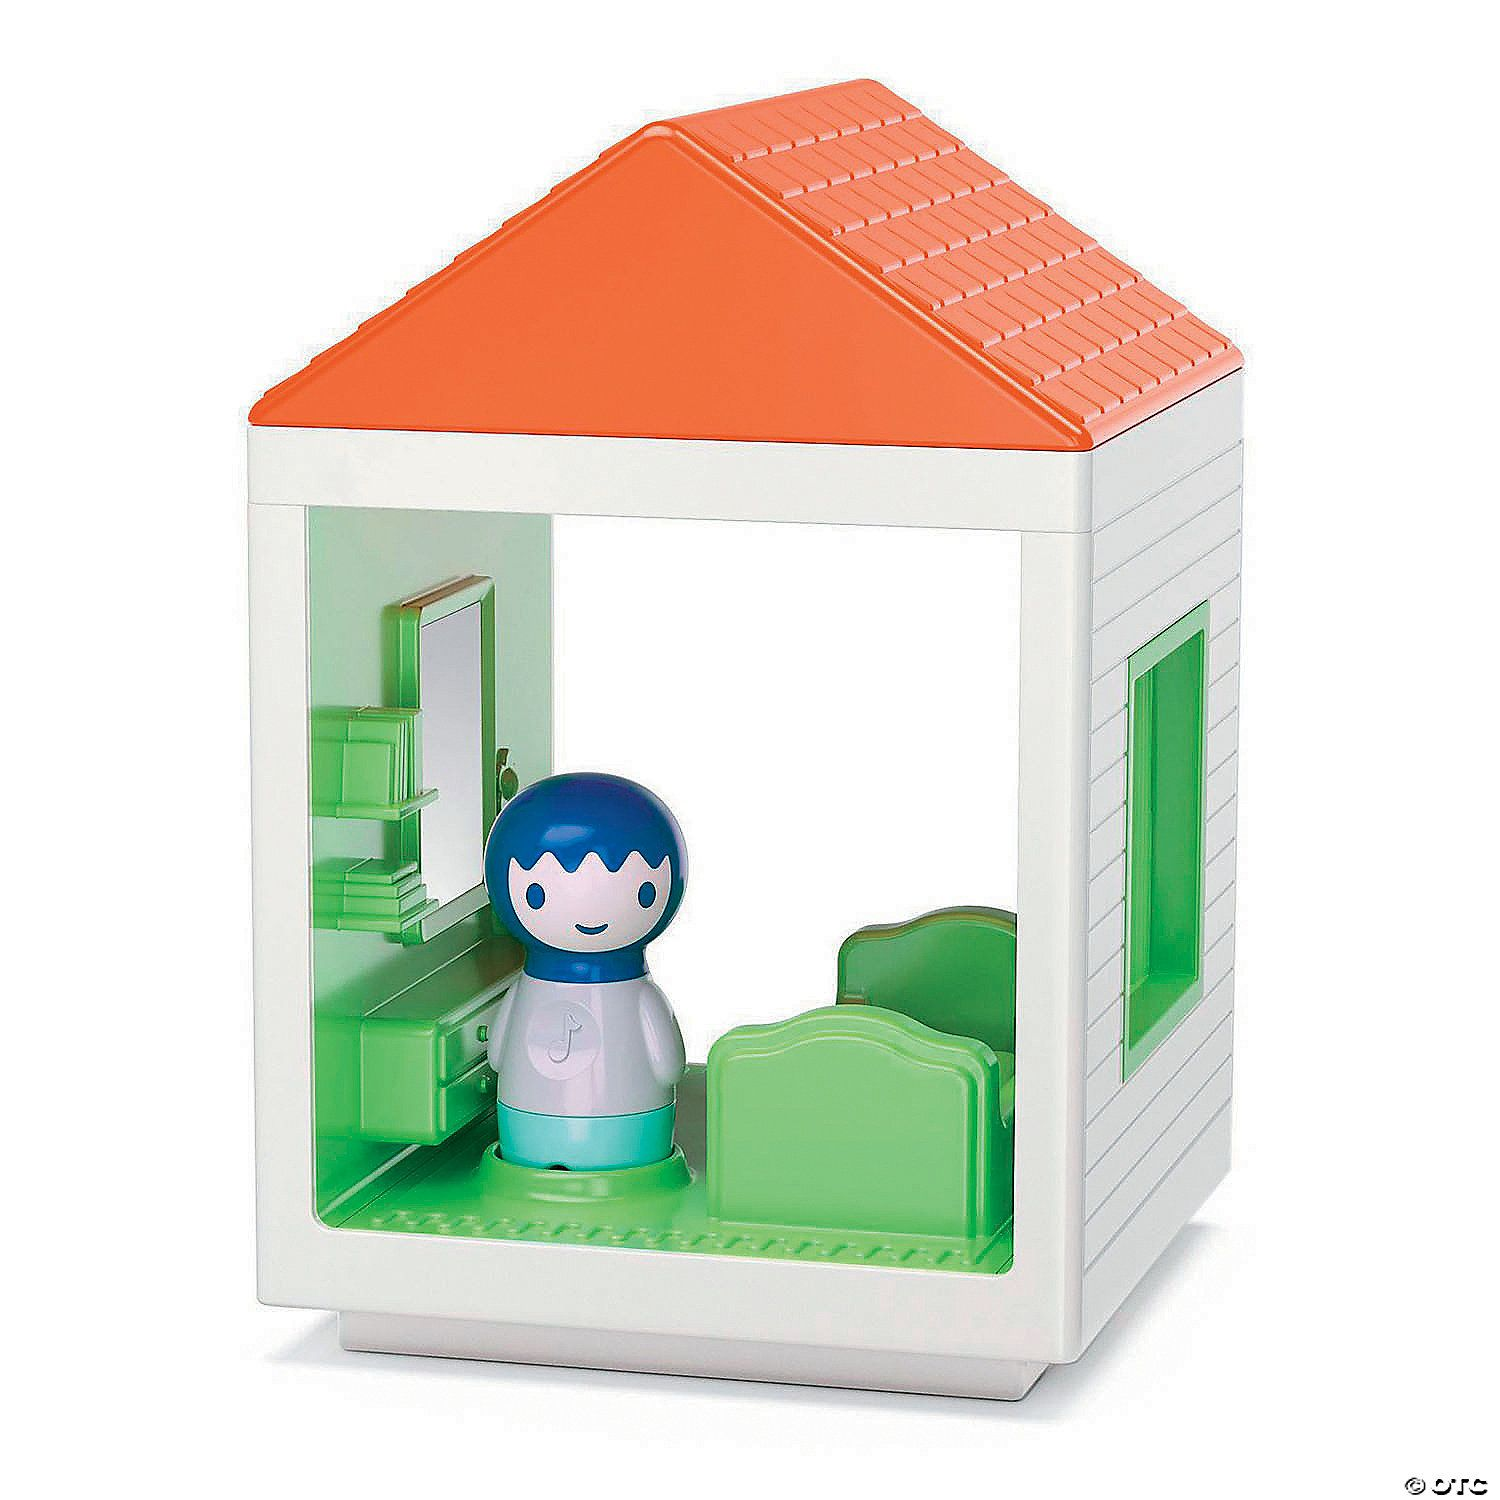 Myland play house sleeping%7e13788696